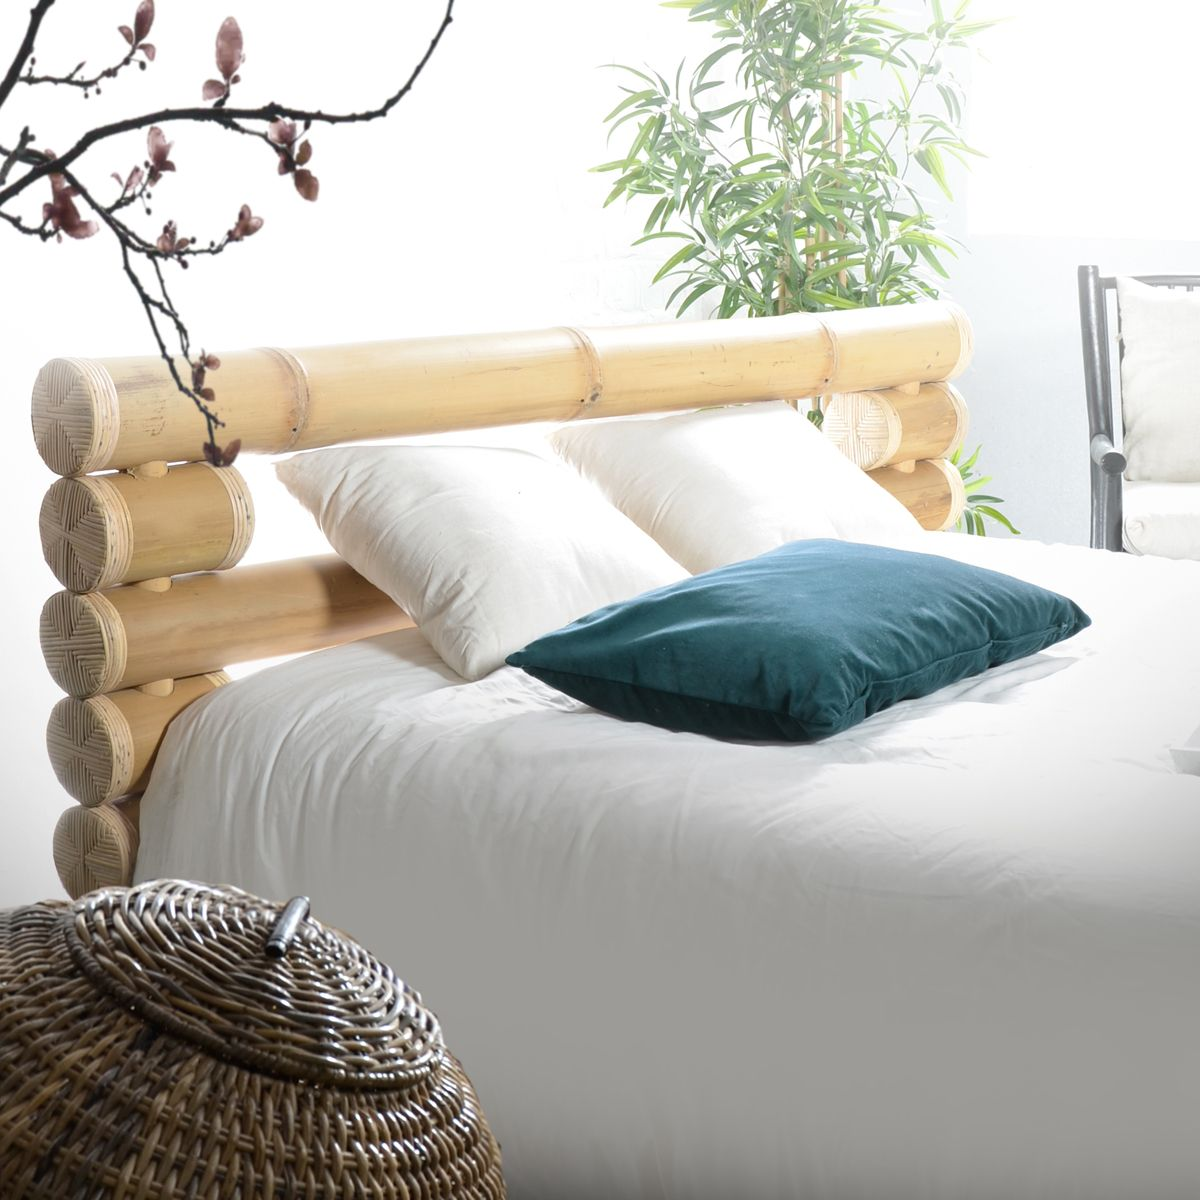 modern bamboo headboard ideas